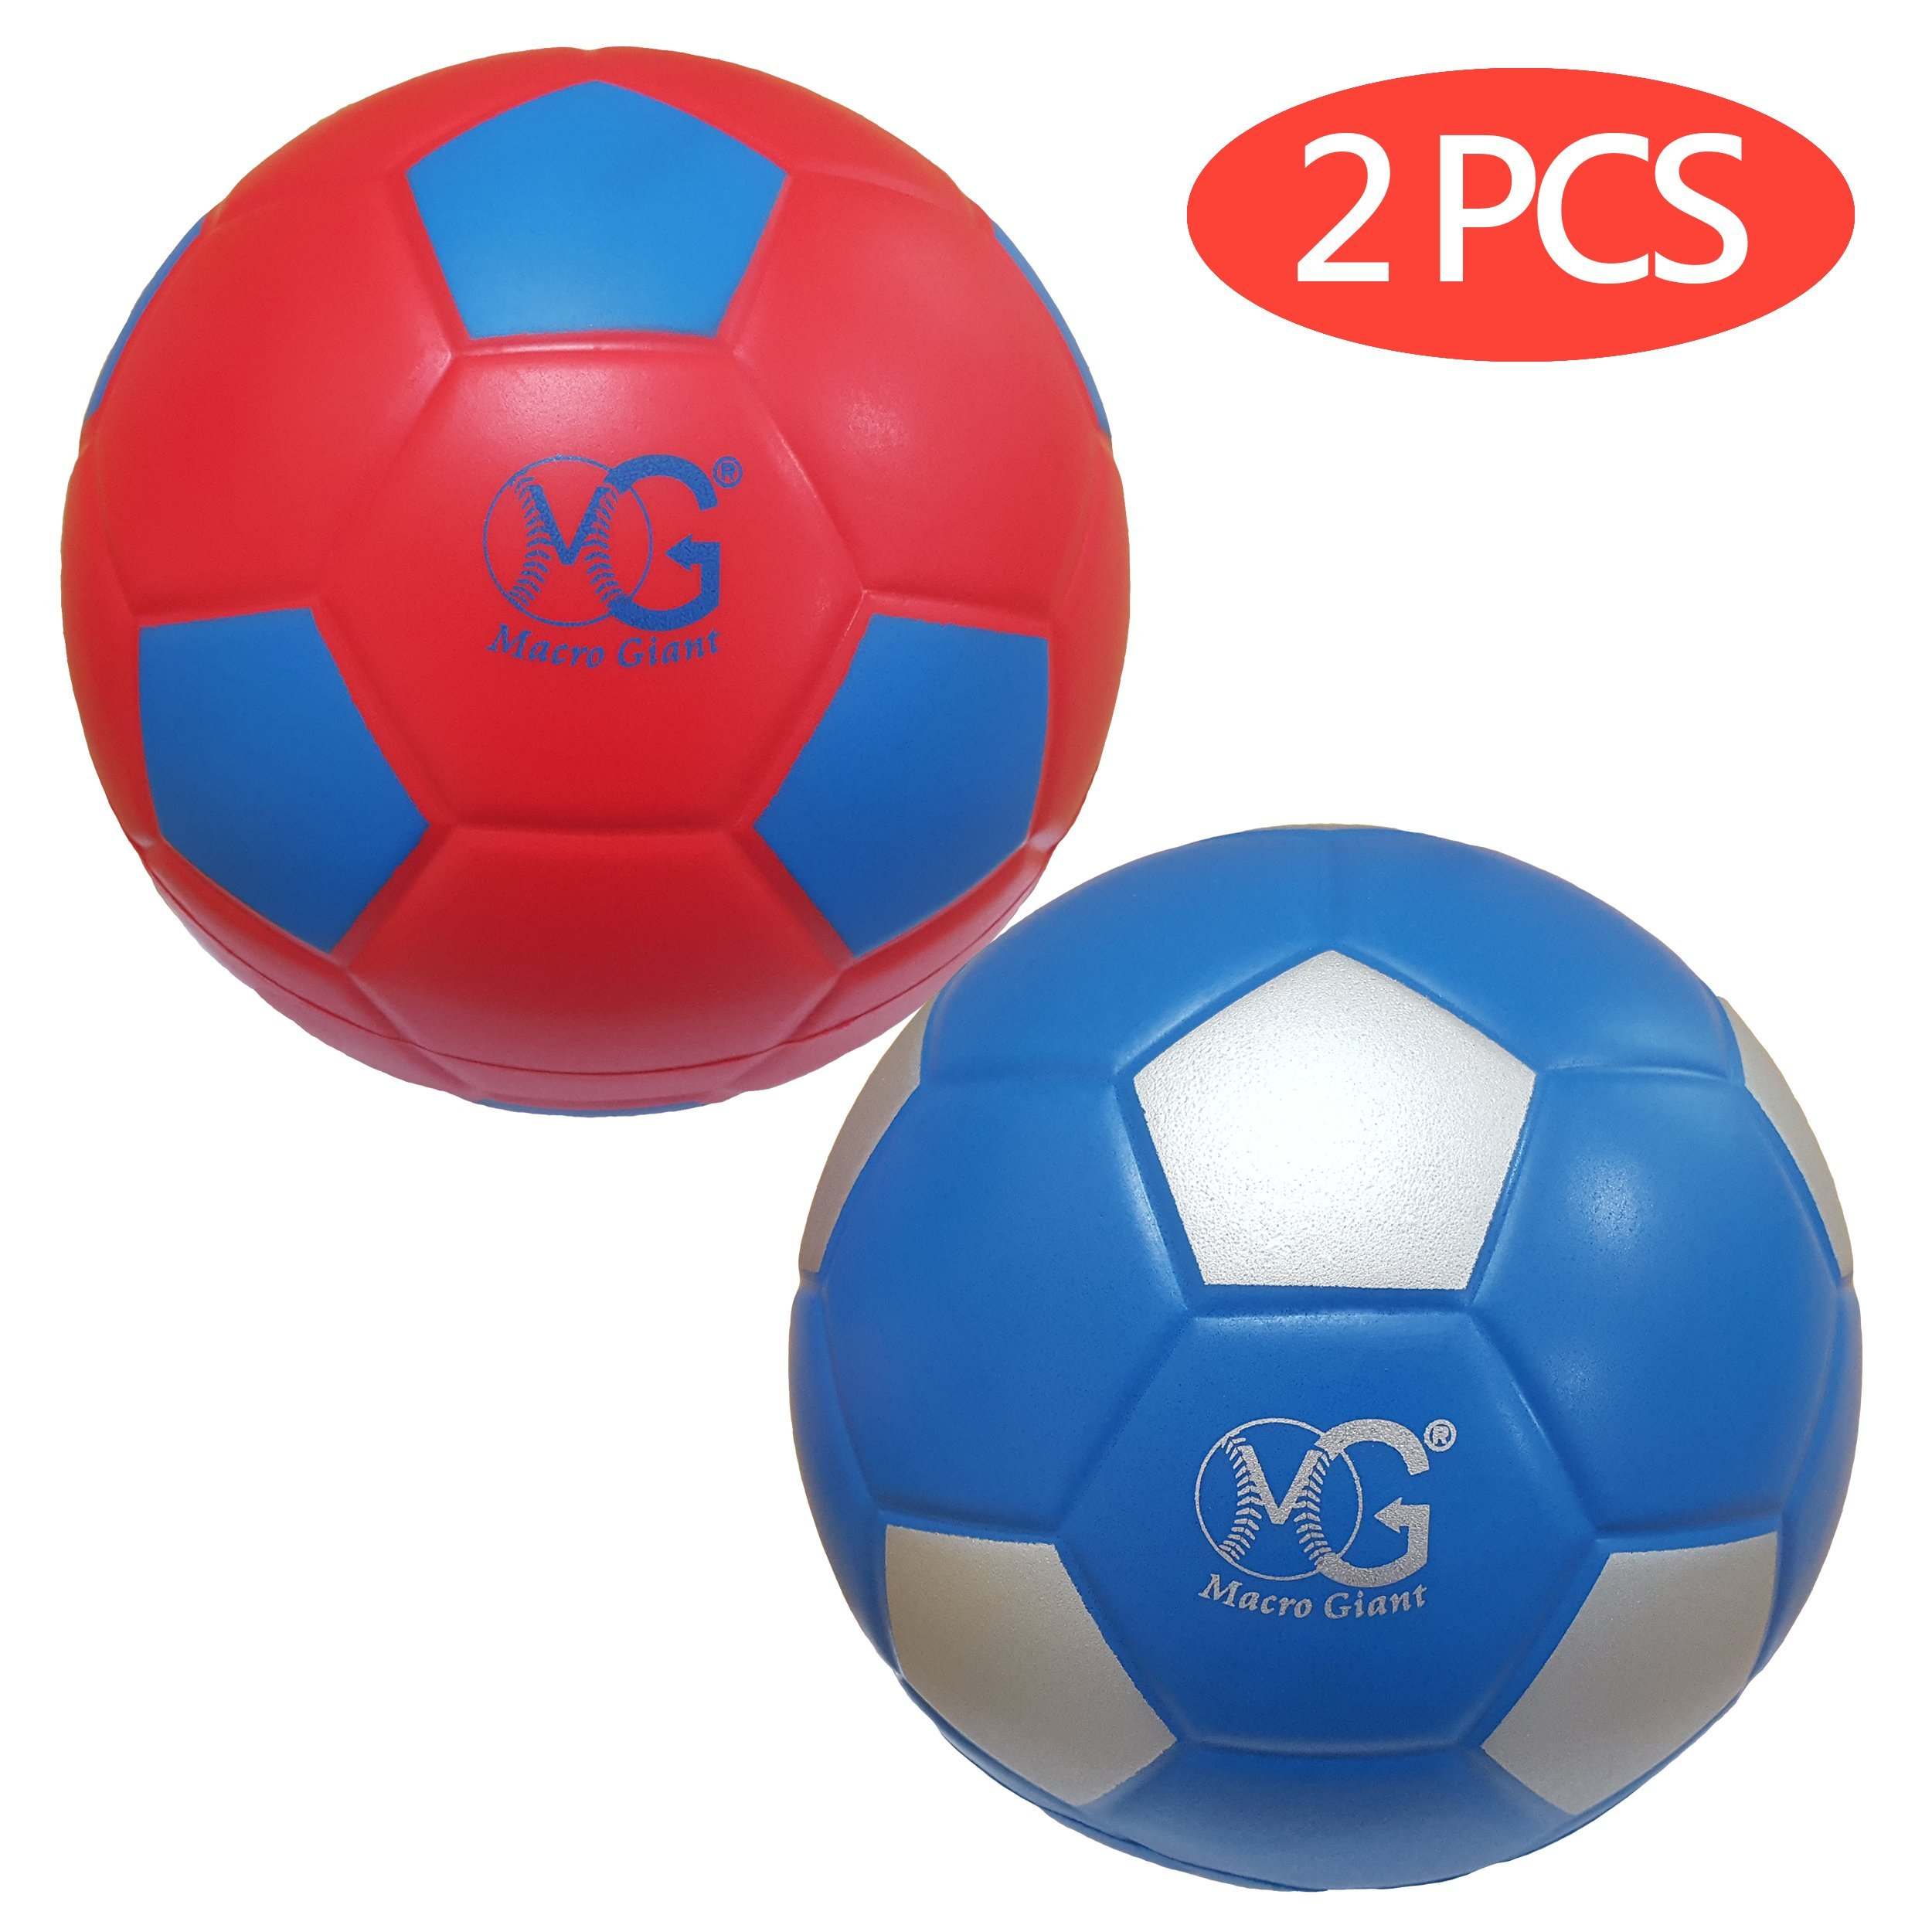 Macro Giant 7.5 Inch (Diameter) Soft Foam Soccer Ball, Set of 2, Red & Blue, Training Practice, Beginner, Kickball